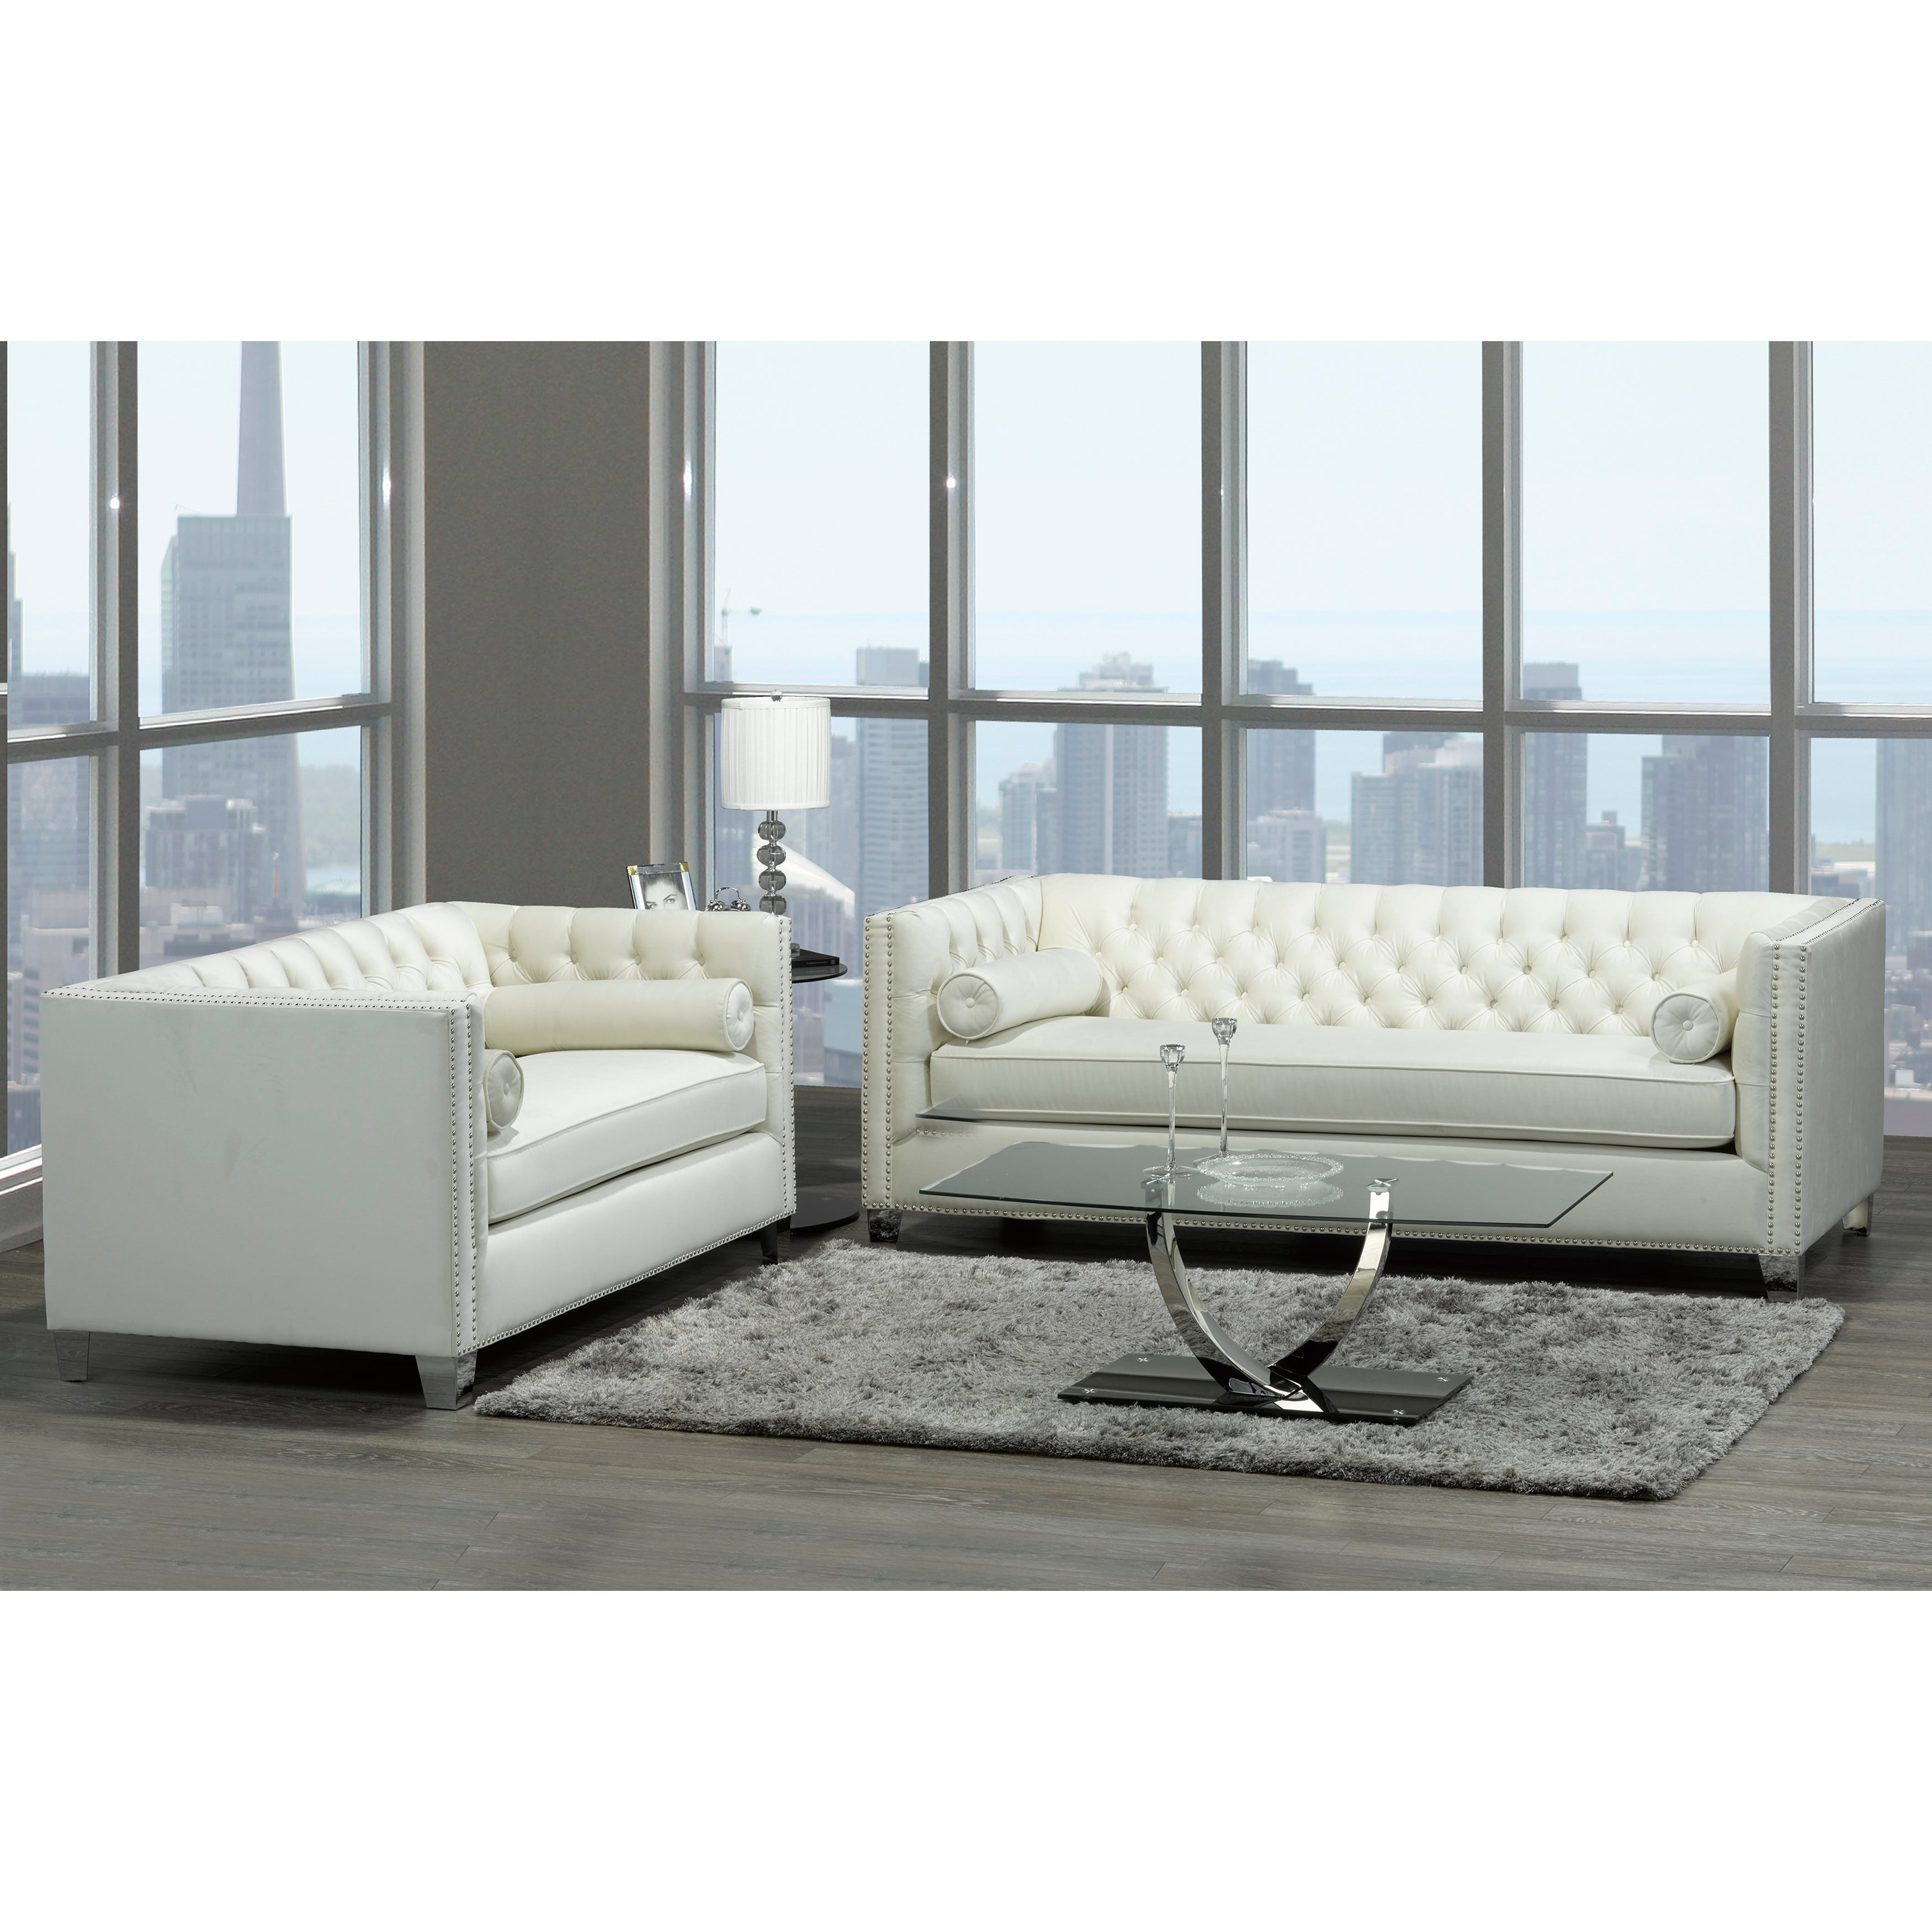 Shop Oz Modern Ivory Velvet Tufted Nailhead Sofa And Loveseat   On Sale    Free Shipping Today   Overstock.com   20847540